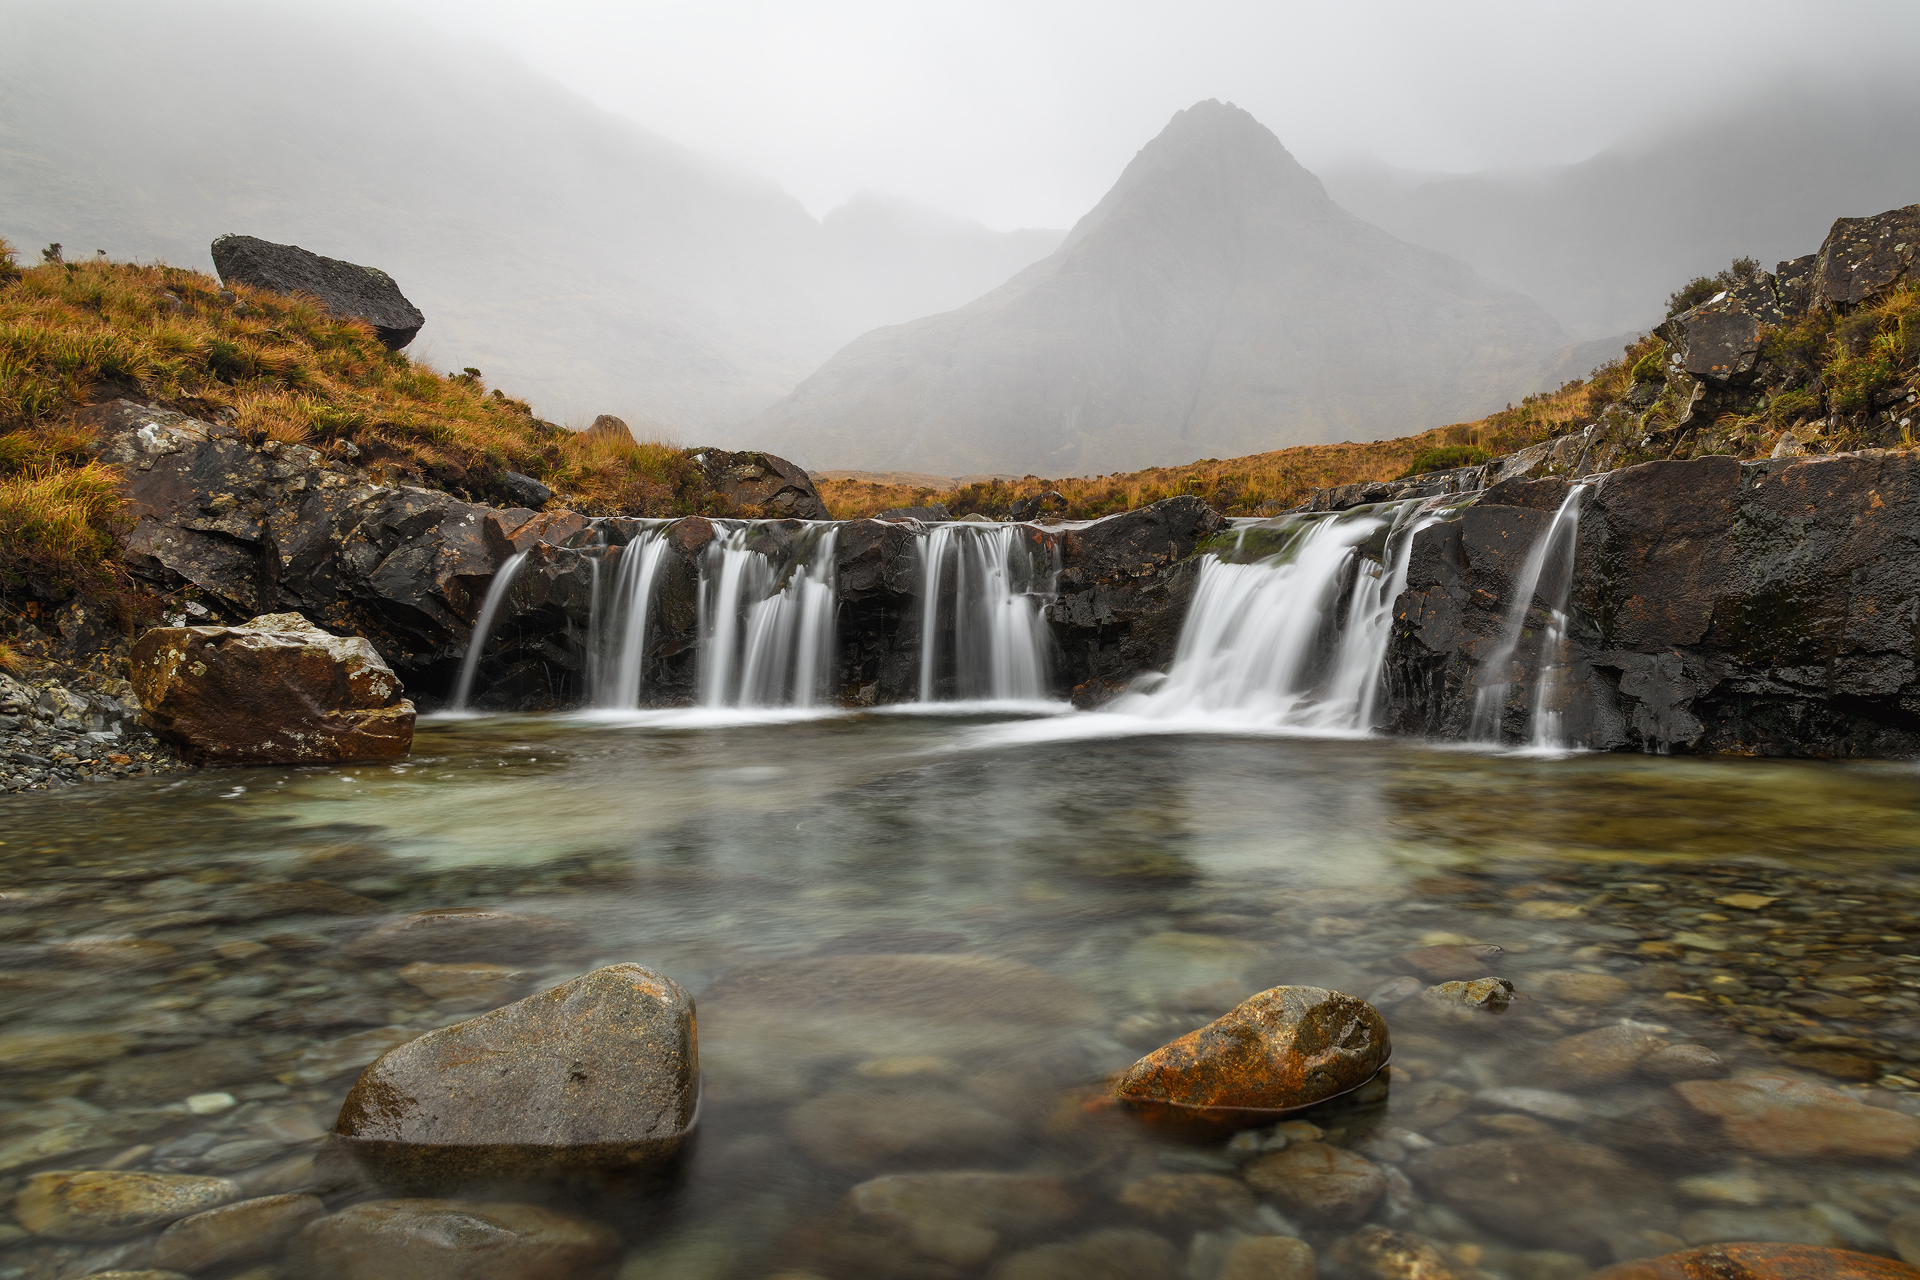 Fairy Pools in the Mist